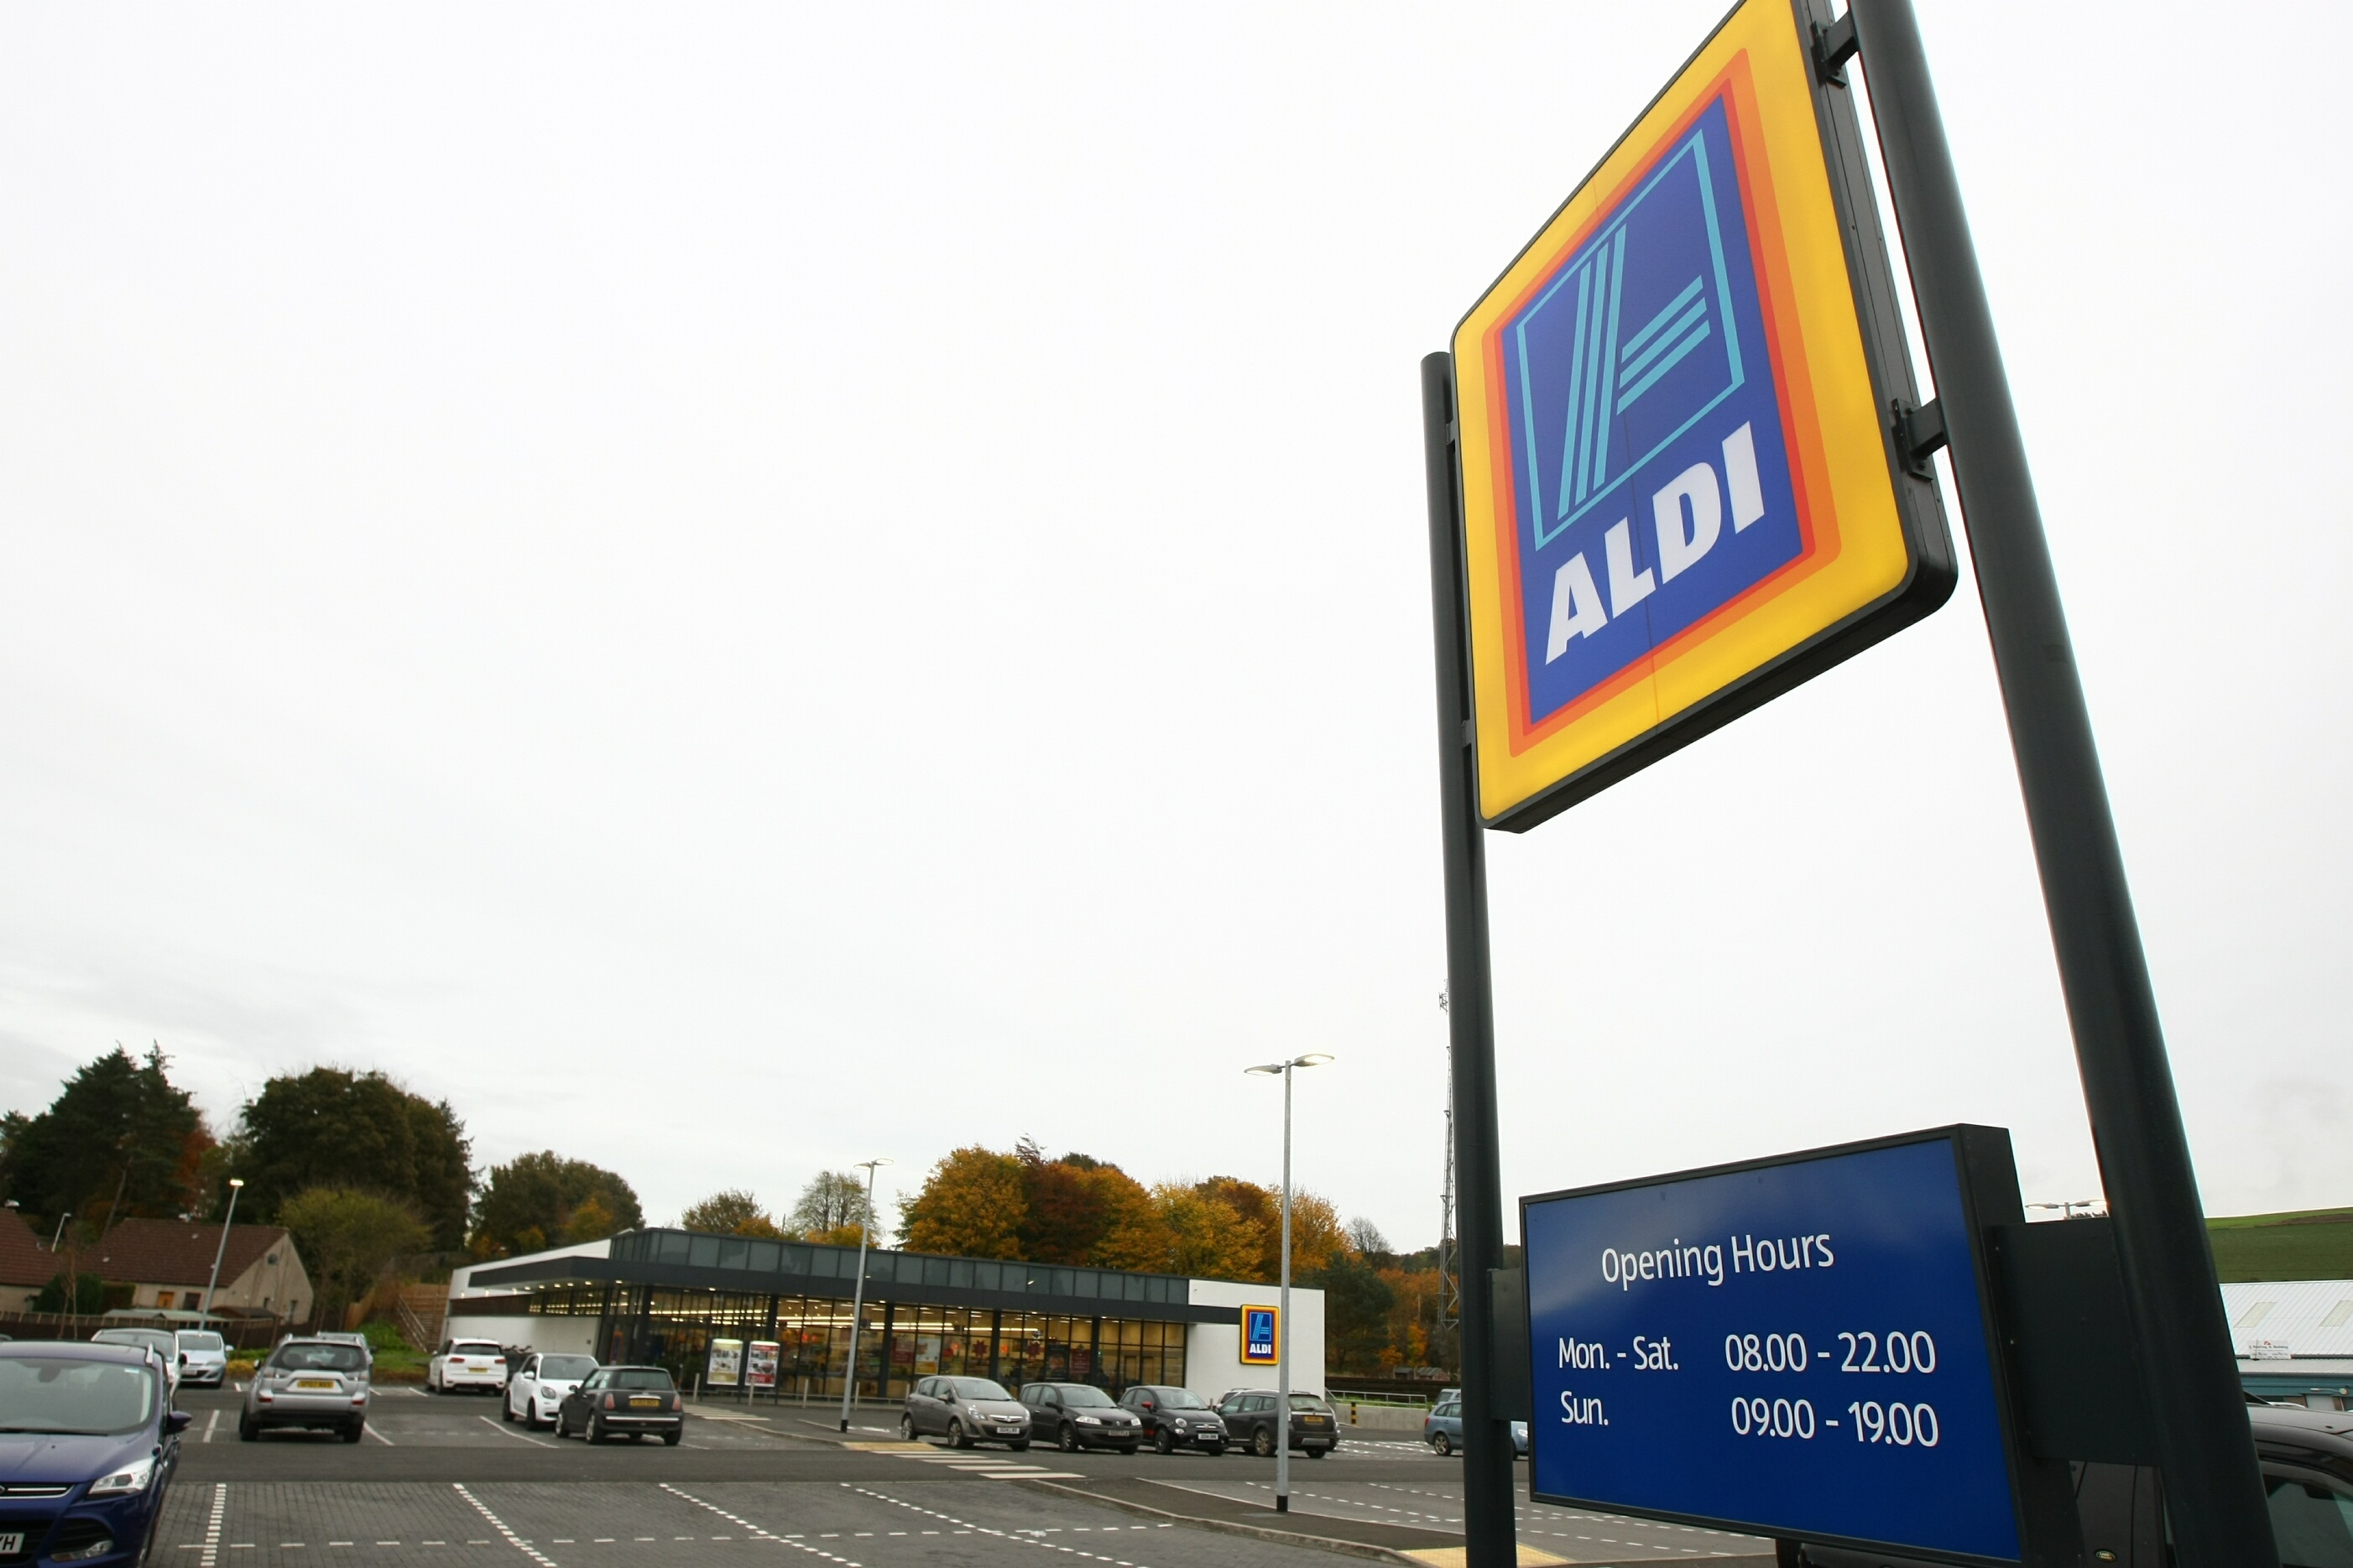 Aldi in Cupar, The German-owned supermarket chain has replaced the Co-op as the fifth biggest in the UK by market share.